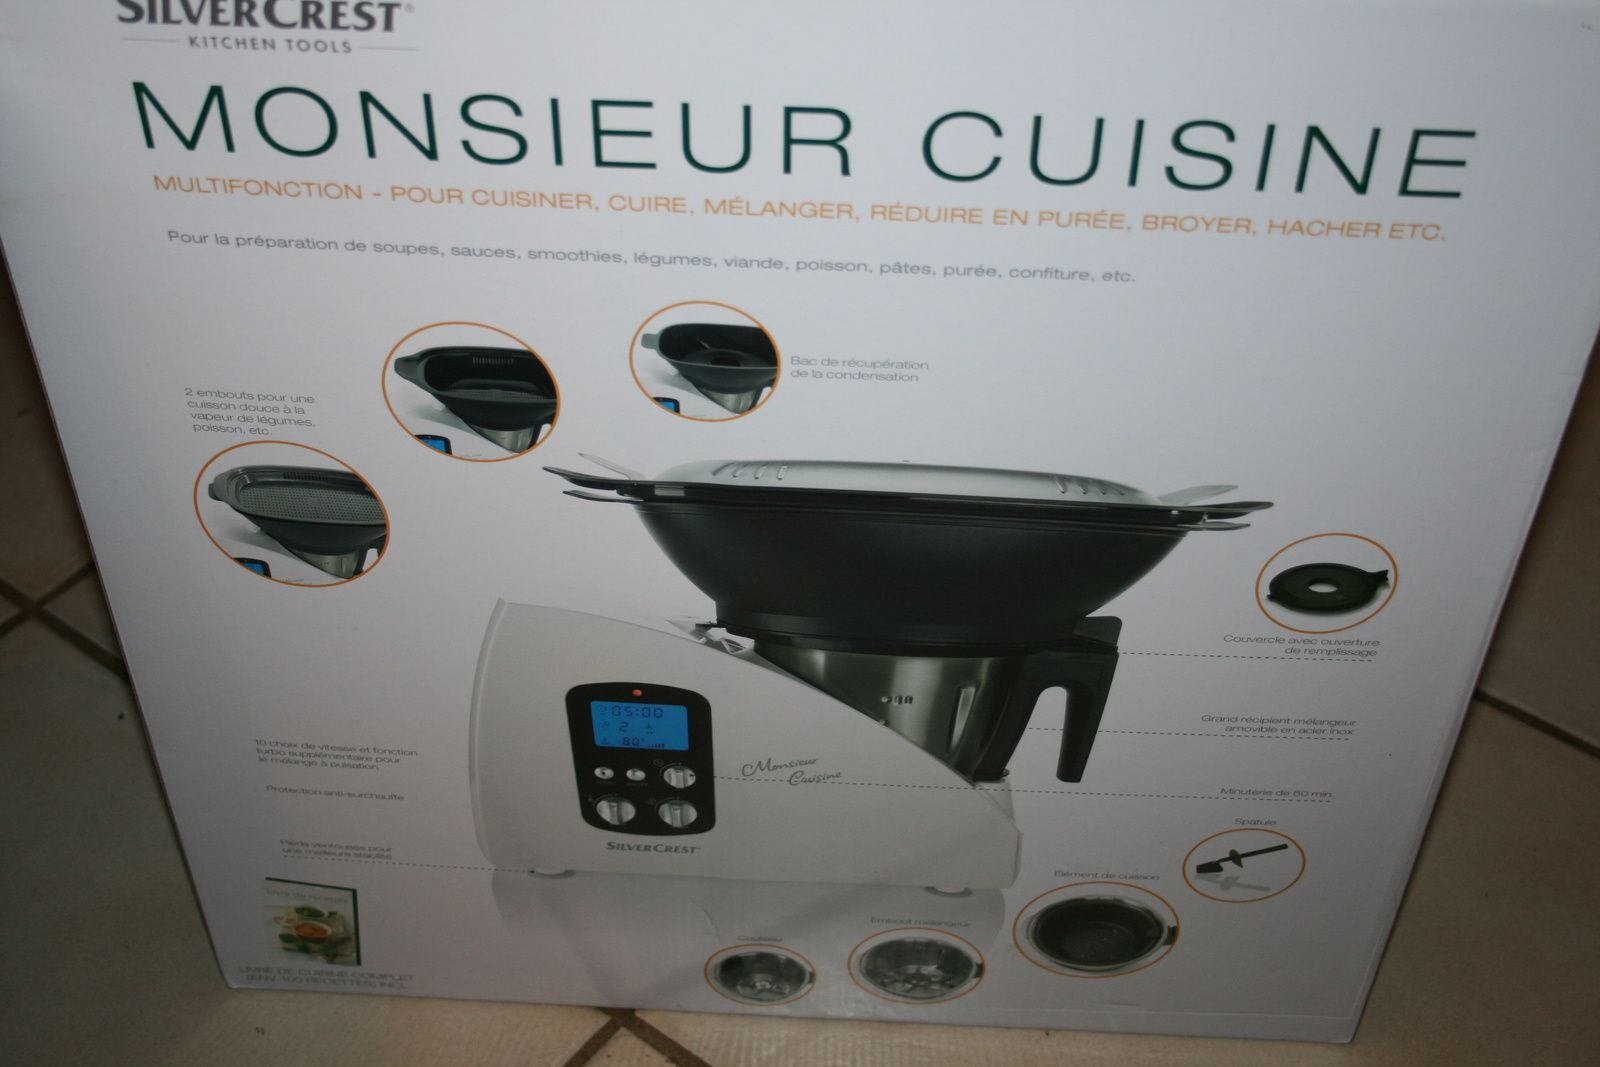 Robot m nager silvercrest lidl for Silvercrest monsieur cuisine plus